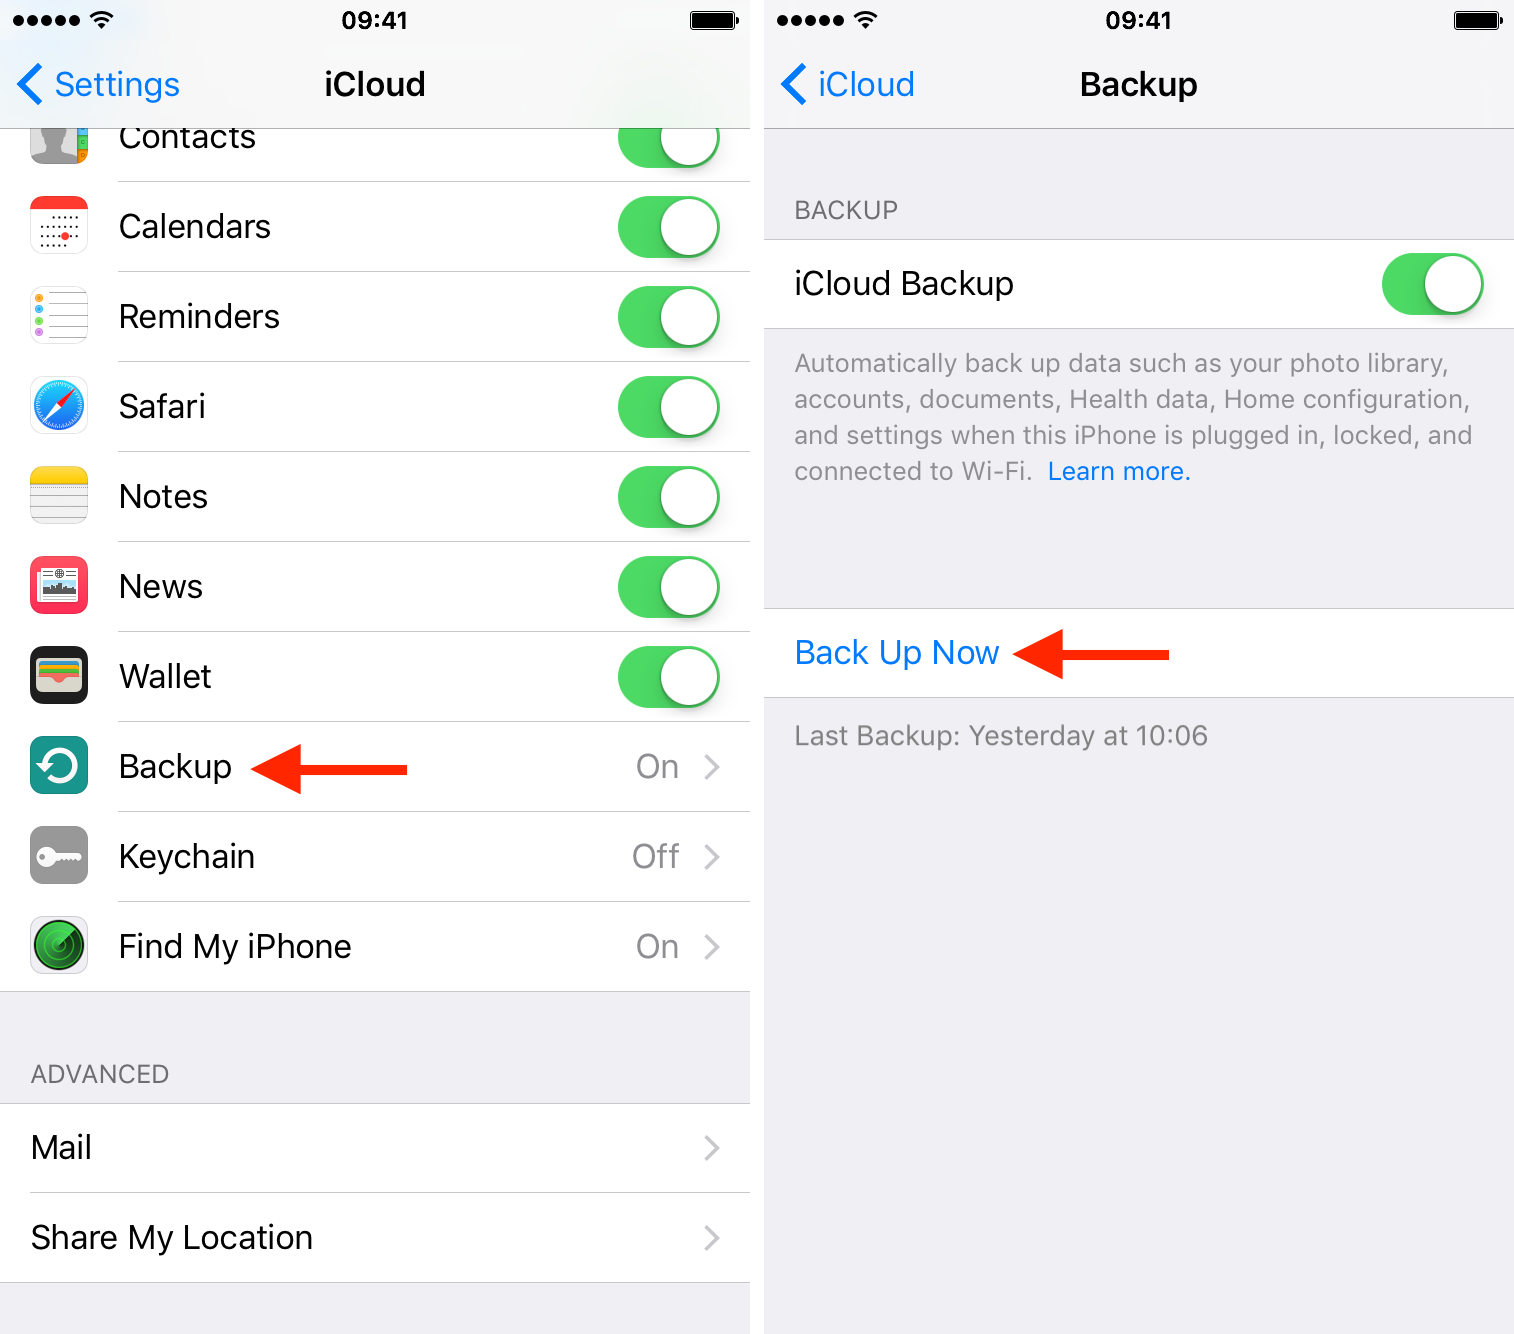 turn on the iCloud backup option